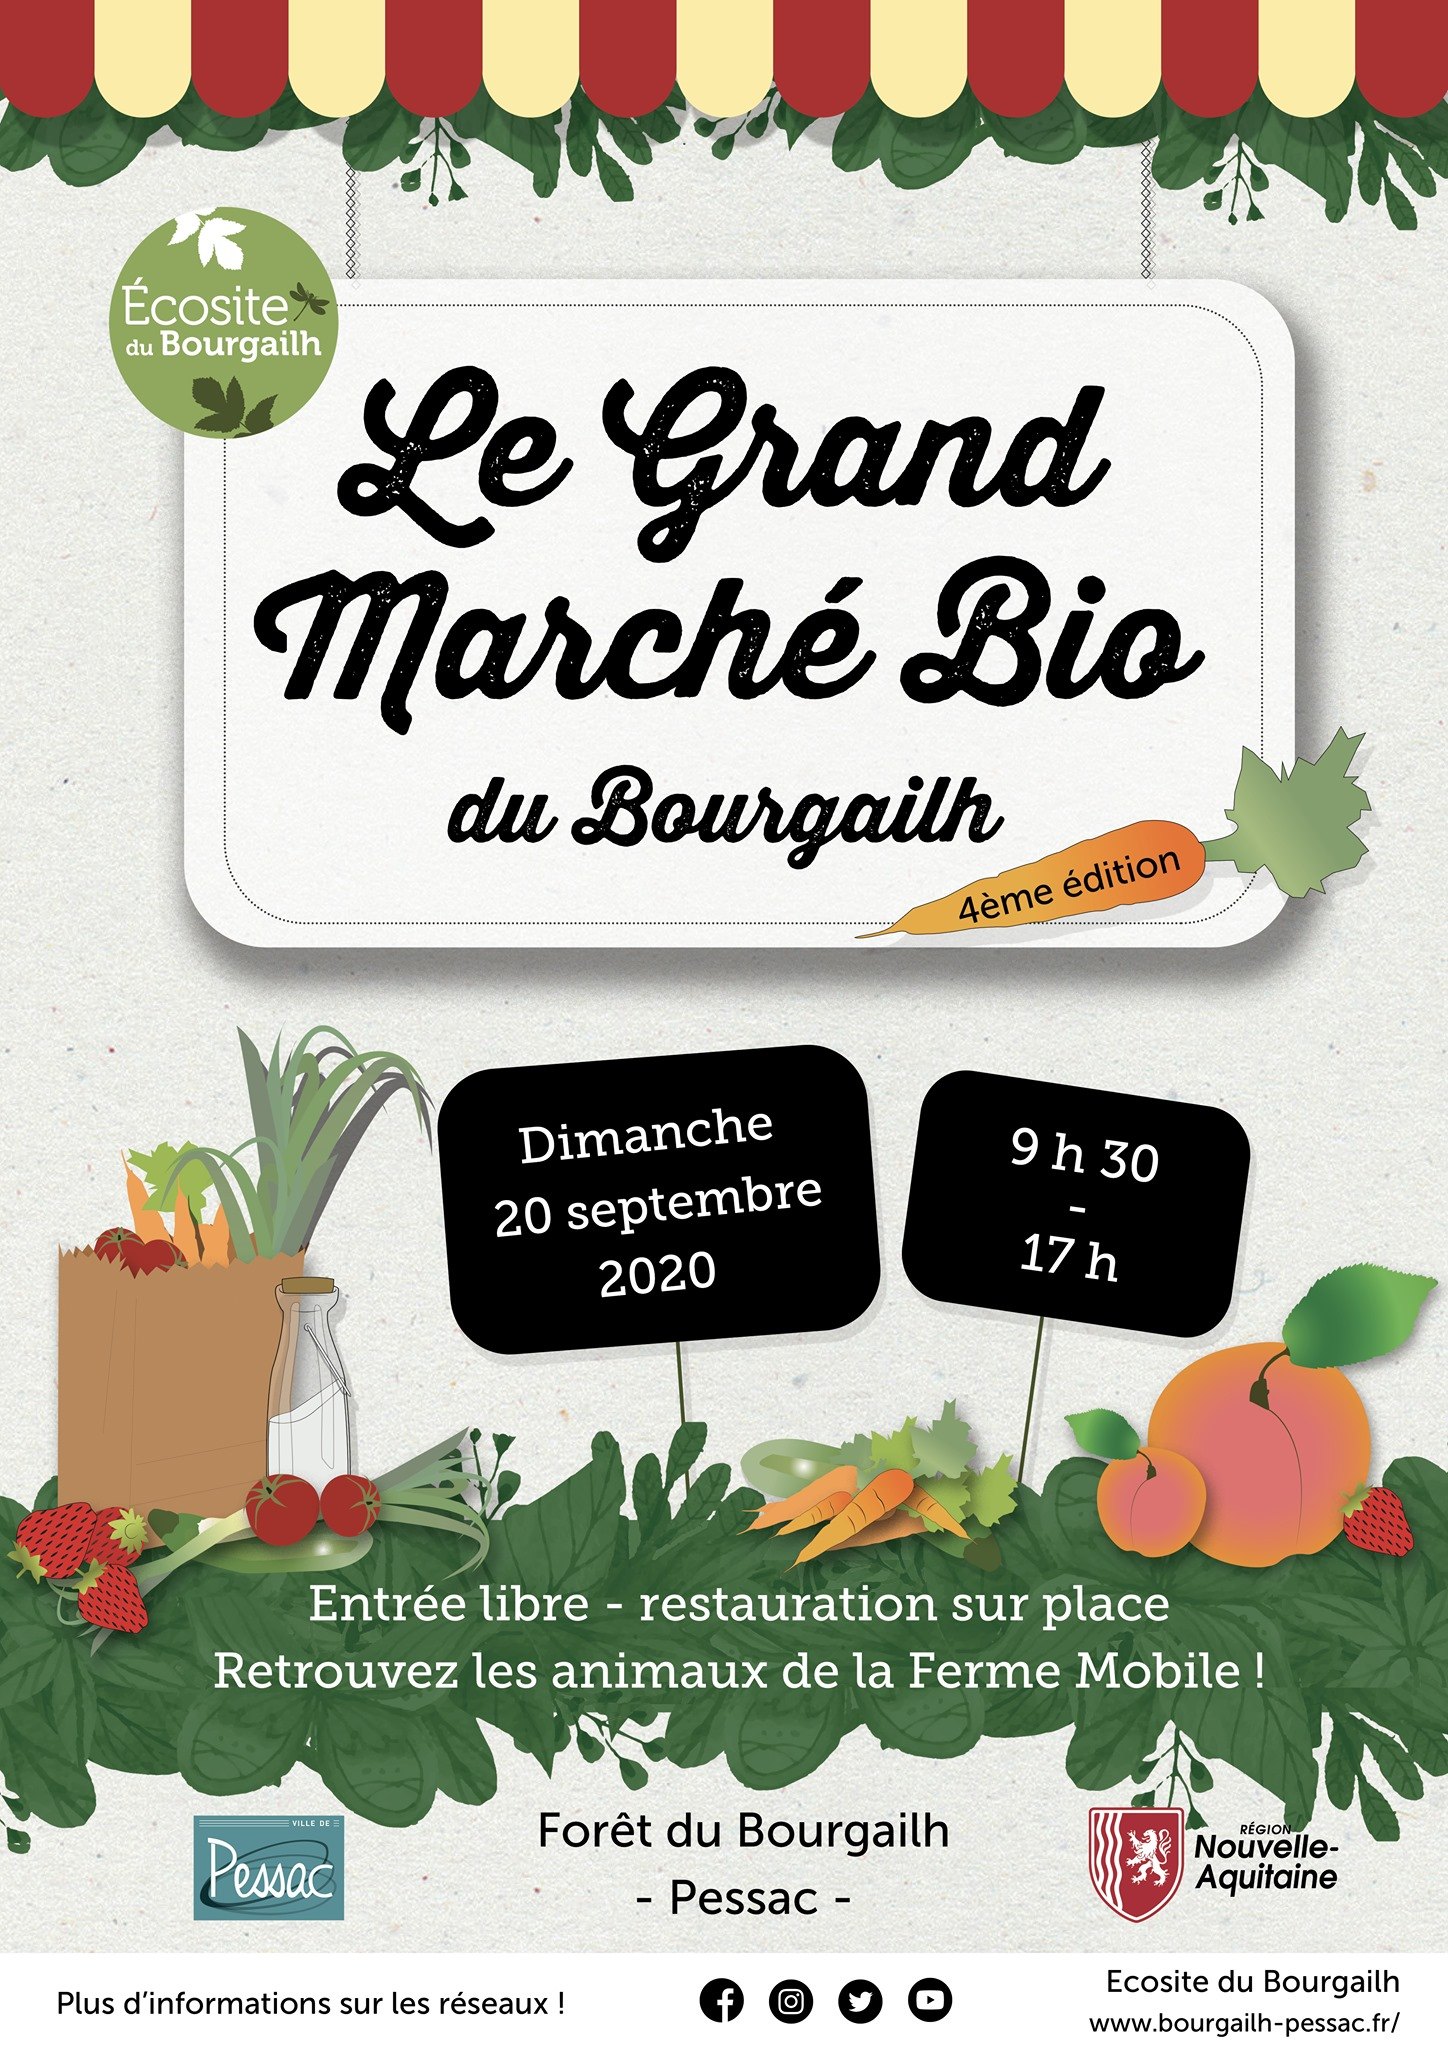 https://the-place-to-be.fr/wp-content/uploads/2020/09/grand-marche-bio-ecosite-bourgailh-pessac-2020.jpg